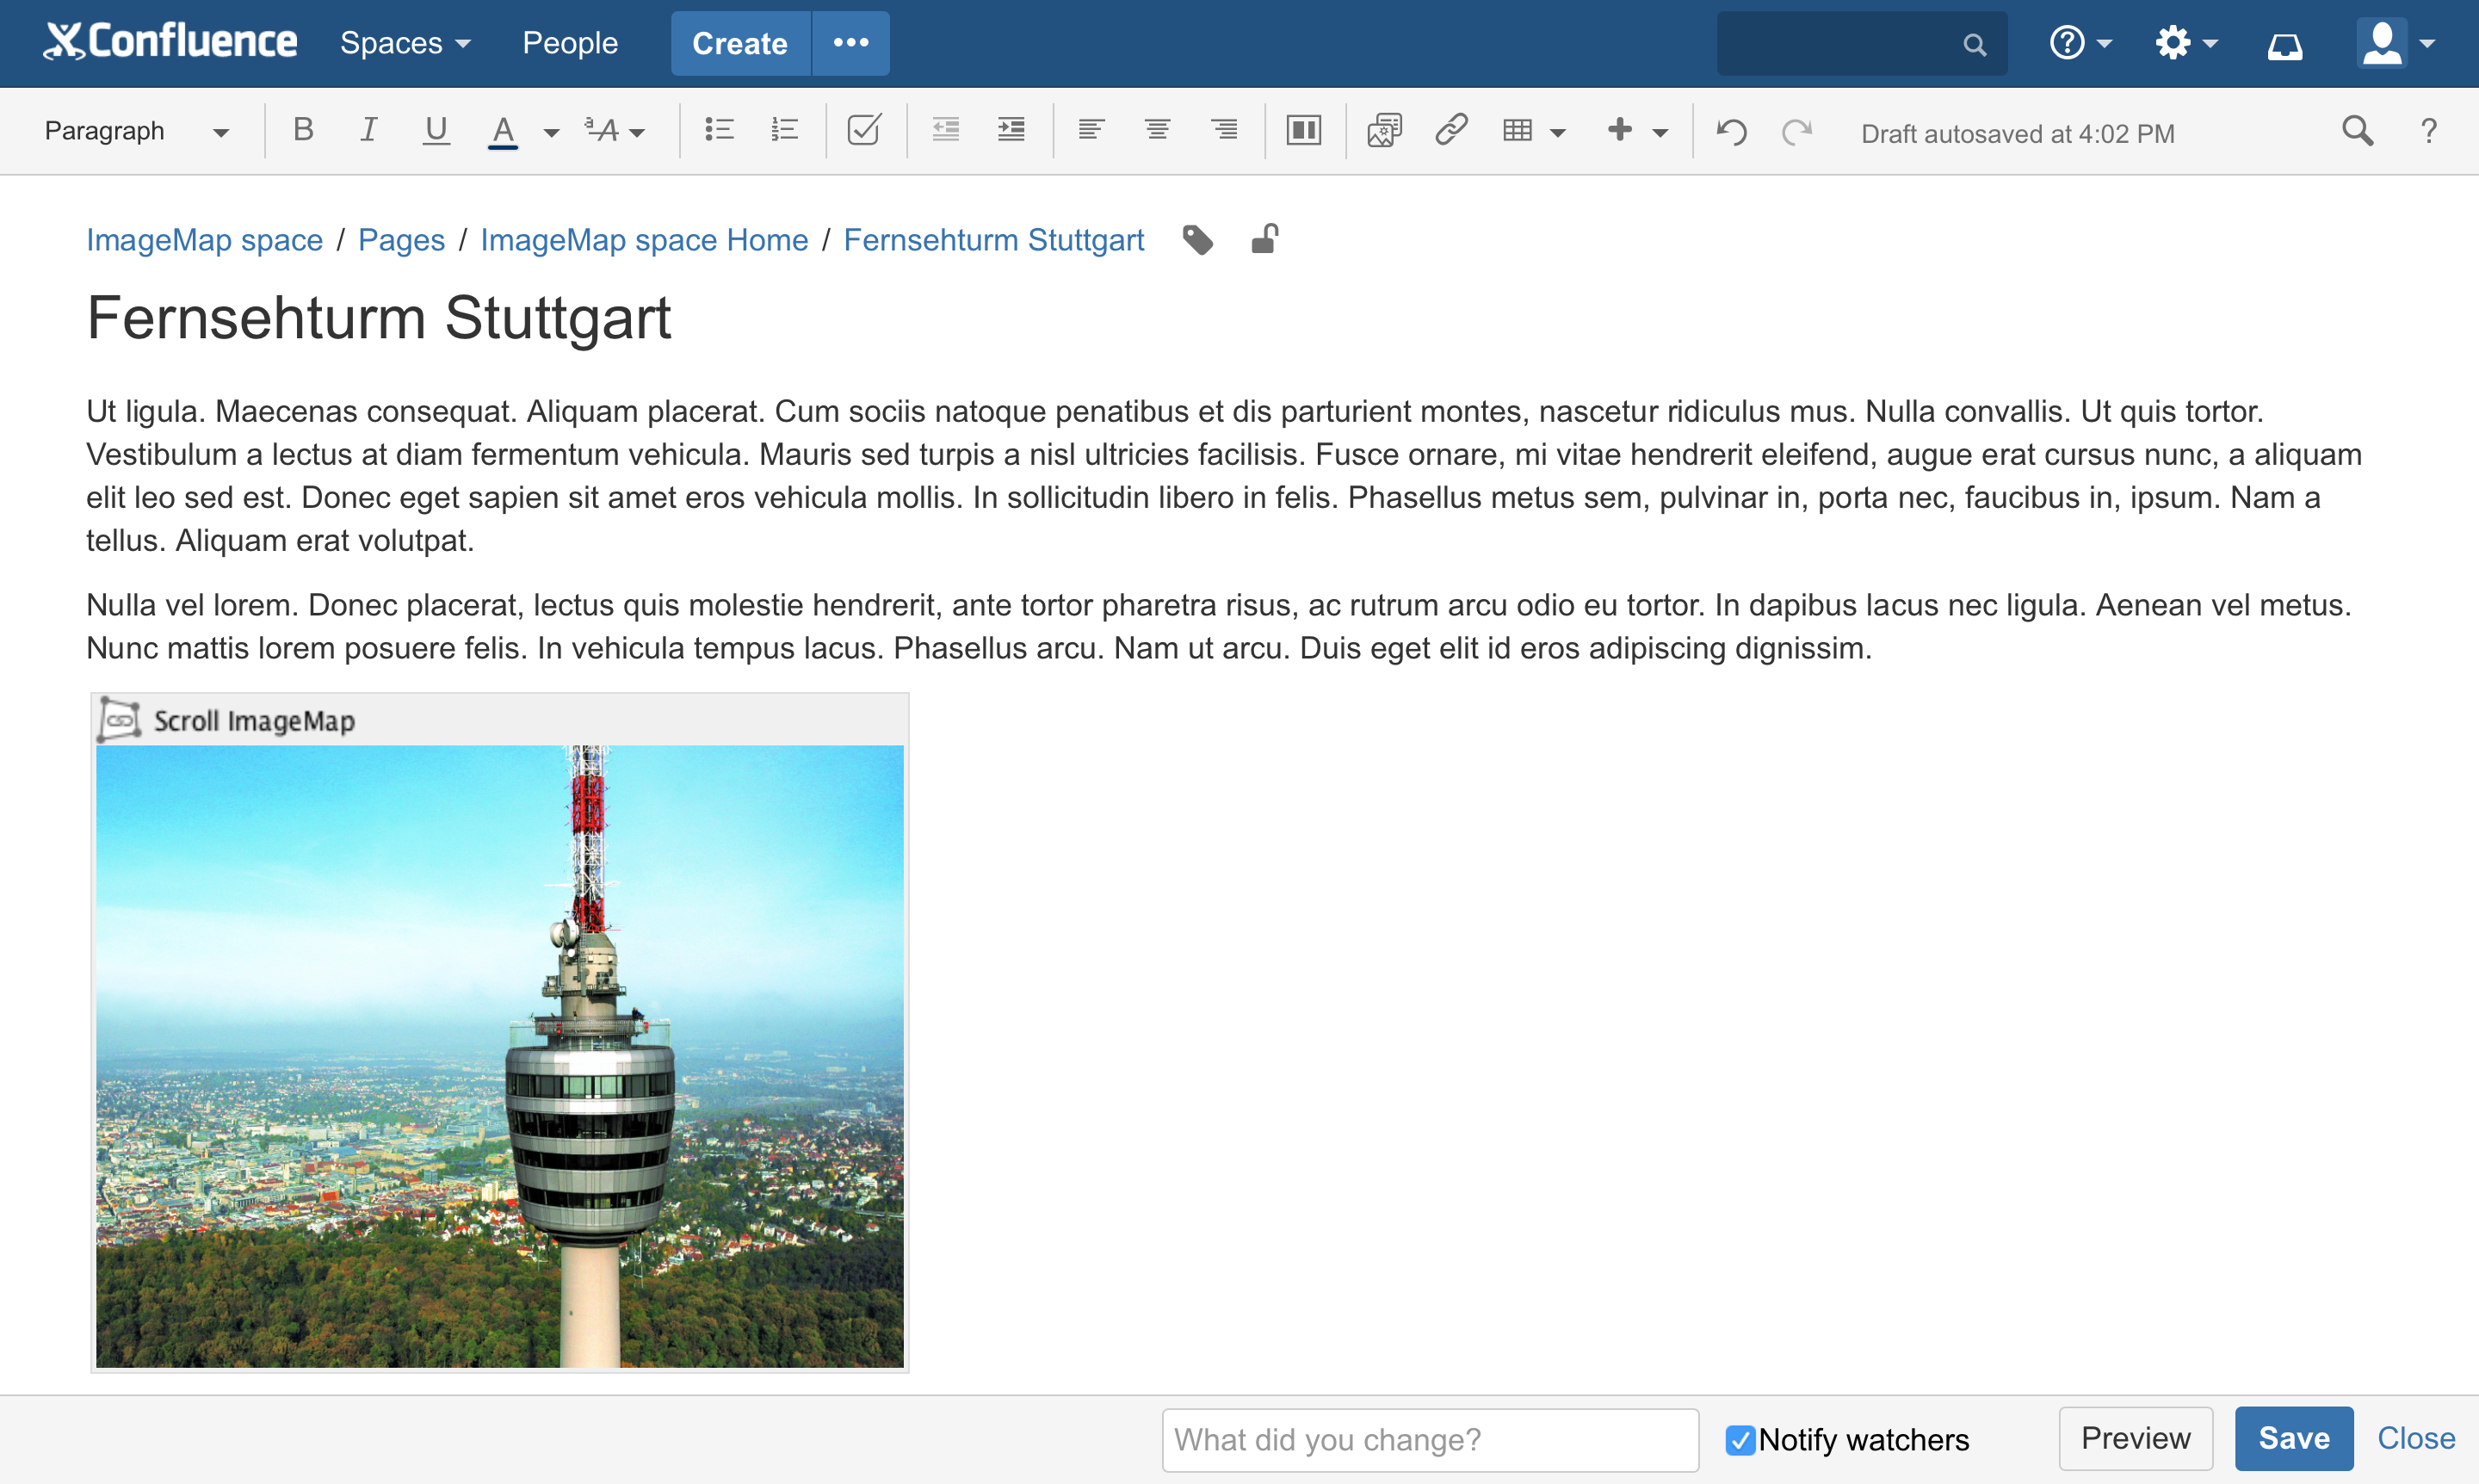 Preview images in the Confluence editor. This feature is available on Confluence Server only.